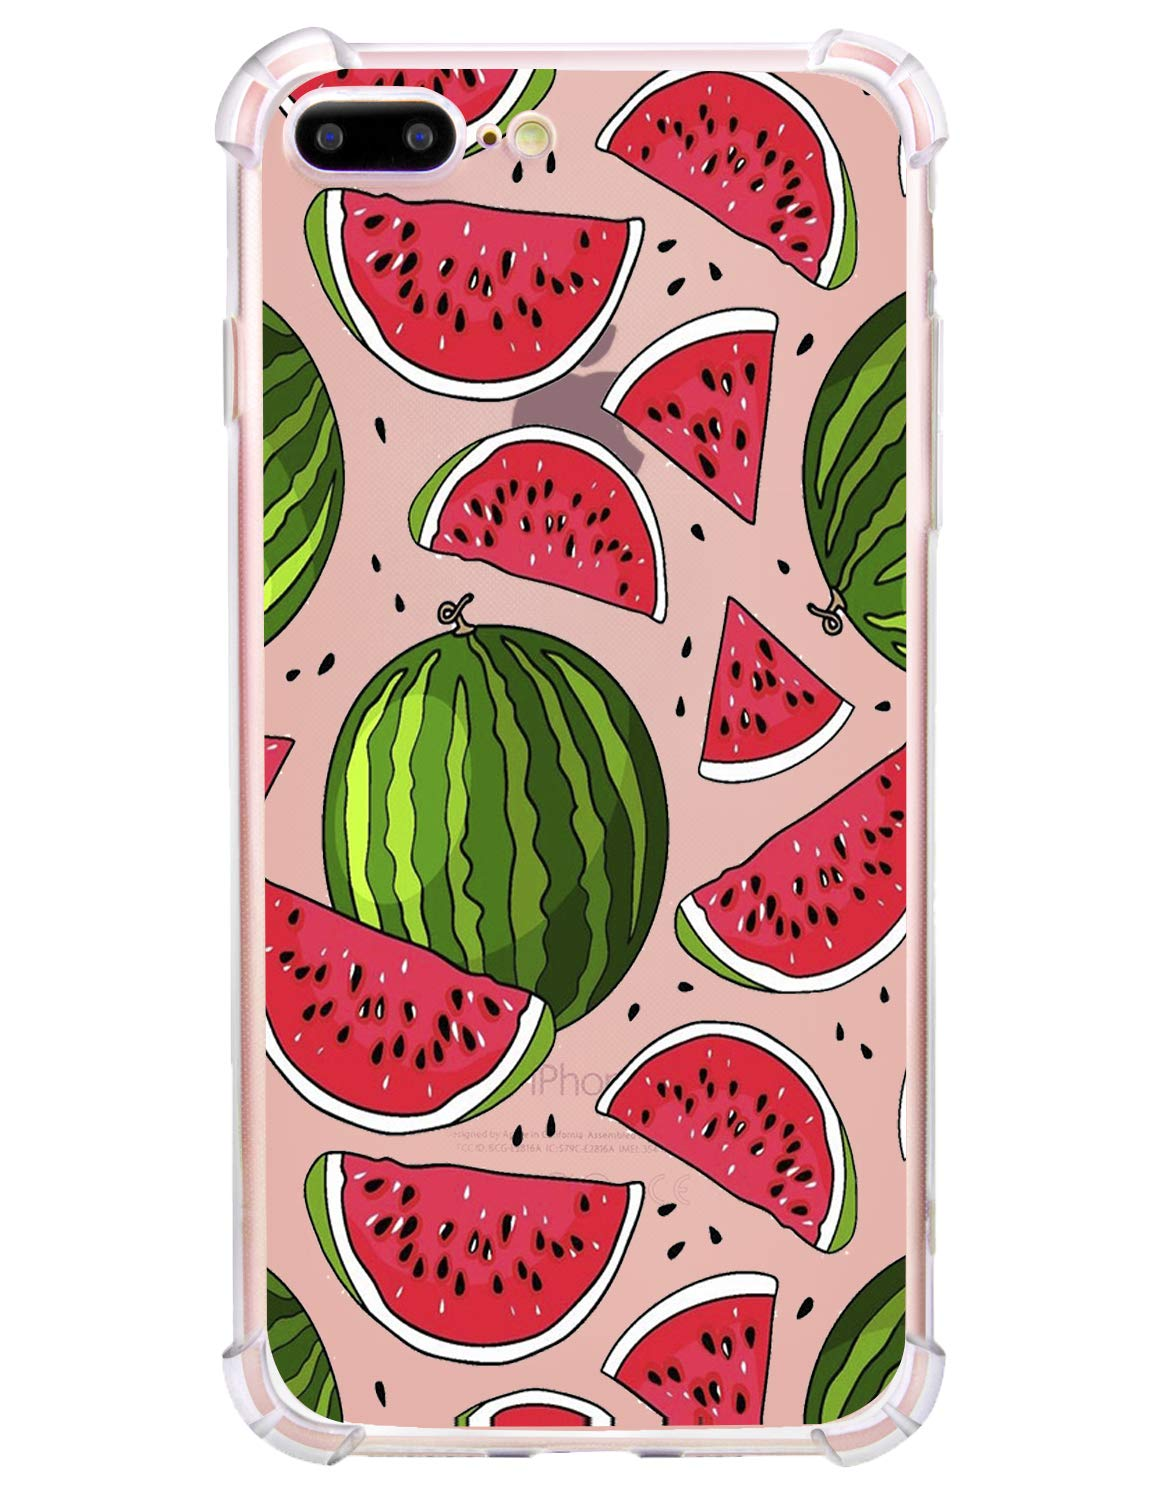 low priced 61793 86a8b Hepix iPhone 8 Plus Clear Case Watermelon iPhone 7 Plus Case Soft Flexible  TPU Protective iPhone Cases Fruits Print Bumper Phone Cover Case for iPhone  ...